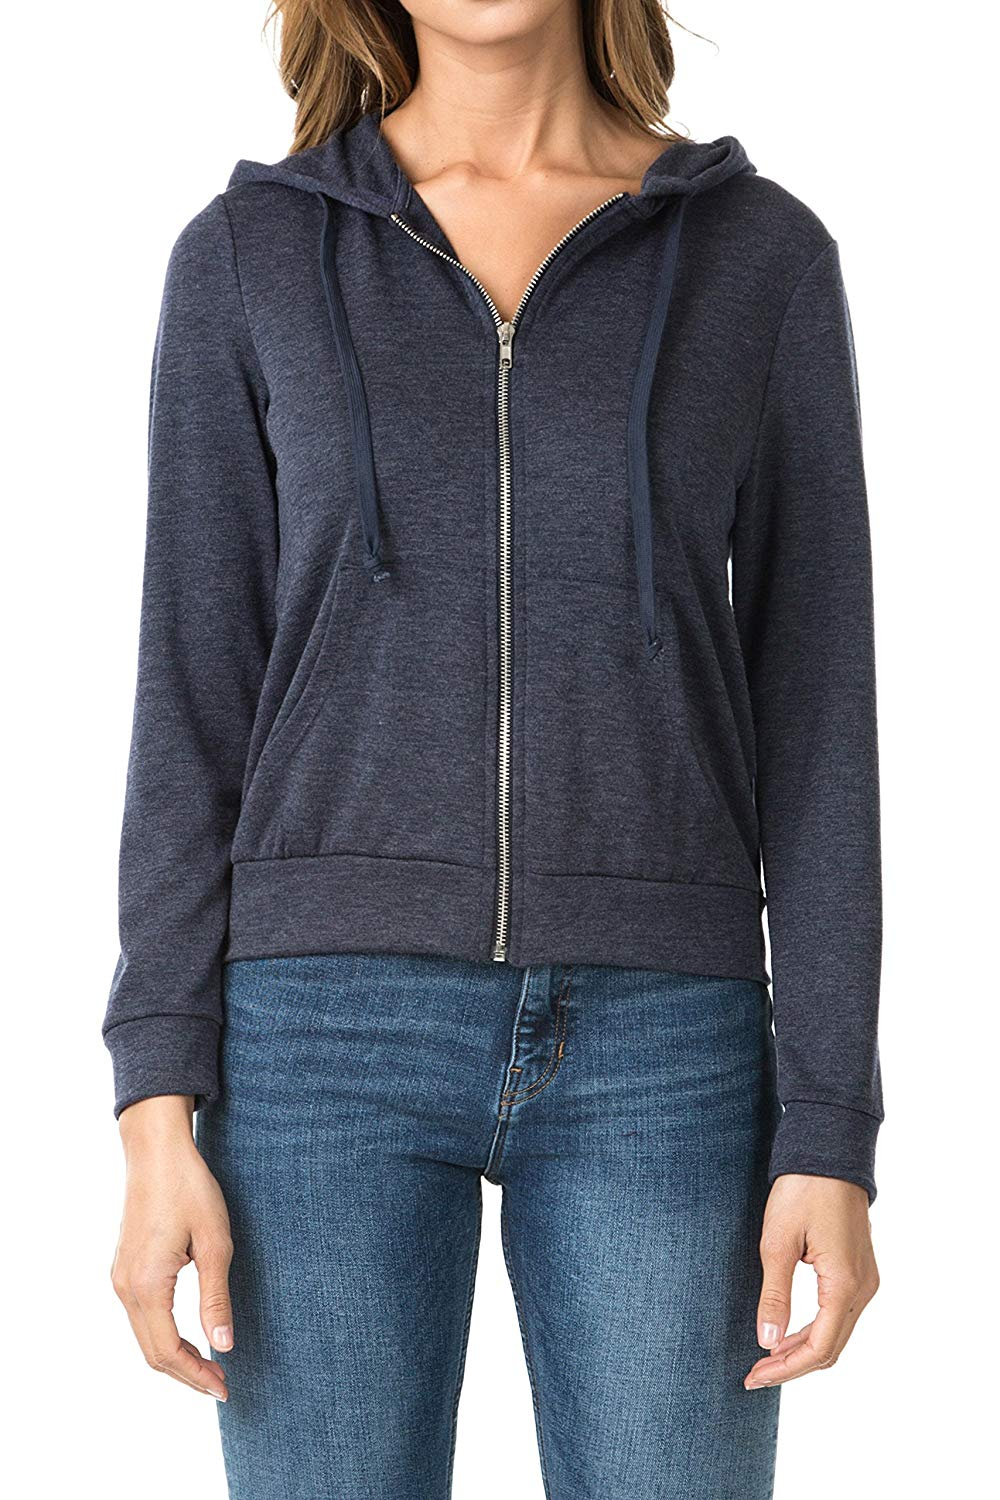 b8078dc6a Get Quotations · WeSeeFashion WSF Women's Zip Up French Terry Extra  Lightweight Hoodie Sweater Jacket with Pocket